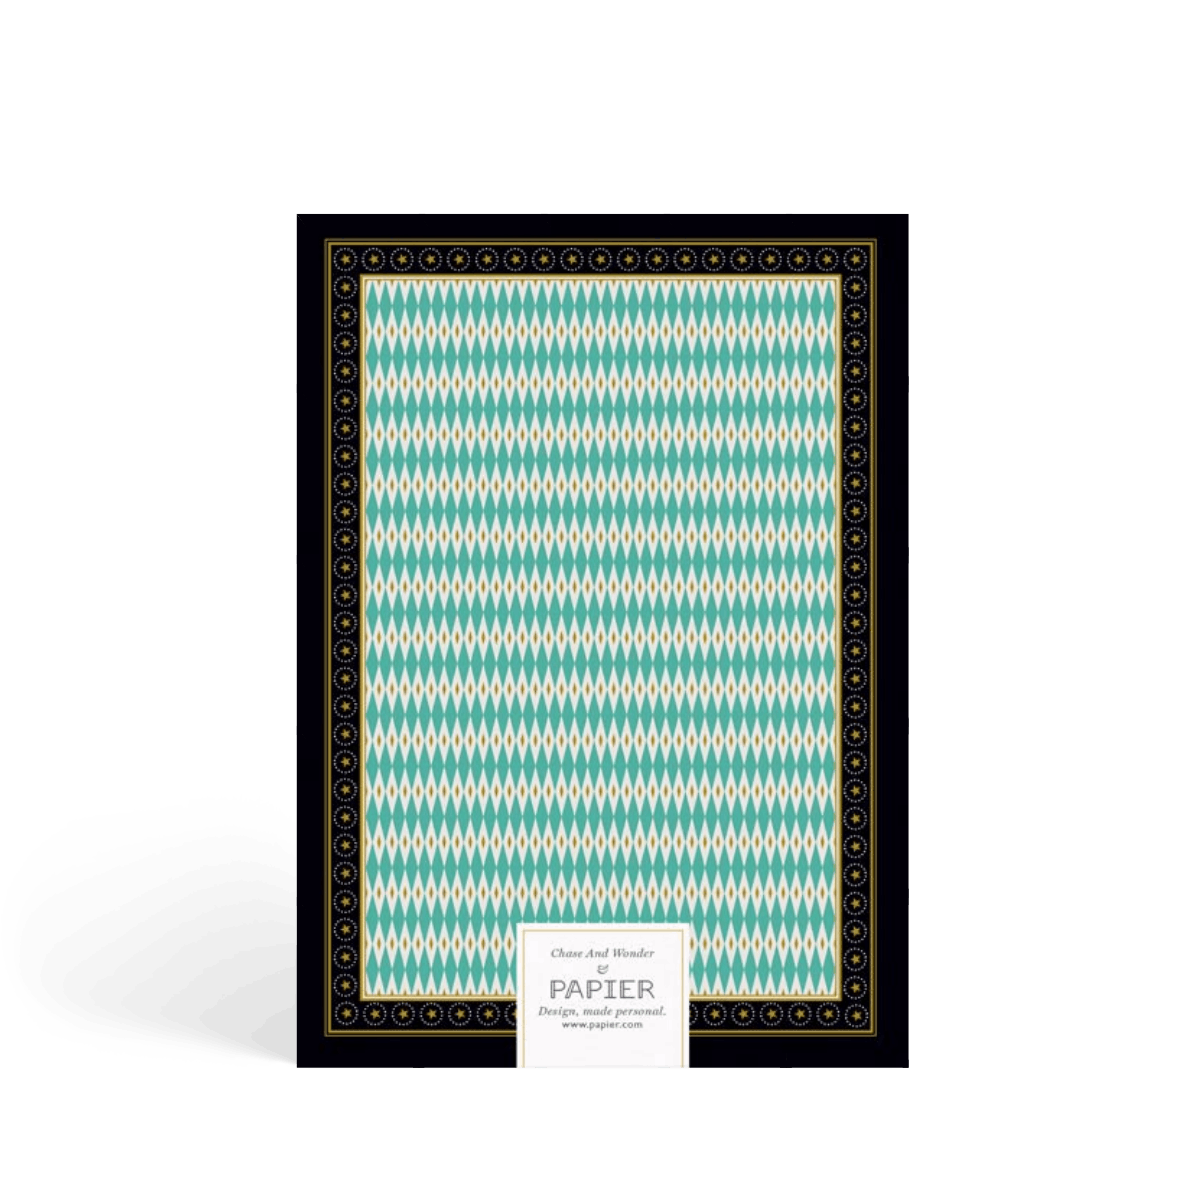 Https%3a%2f%2fwww.papier.com%2fproduct image%2f13568%2f5%2fdeco diamond green 3478 back 1478860884.png?ixlib=rb 1.1